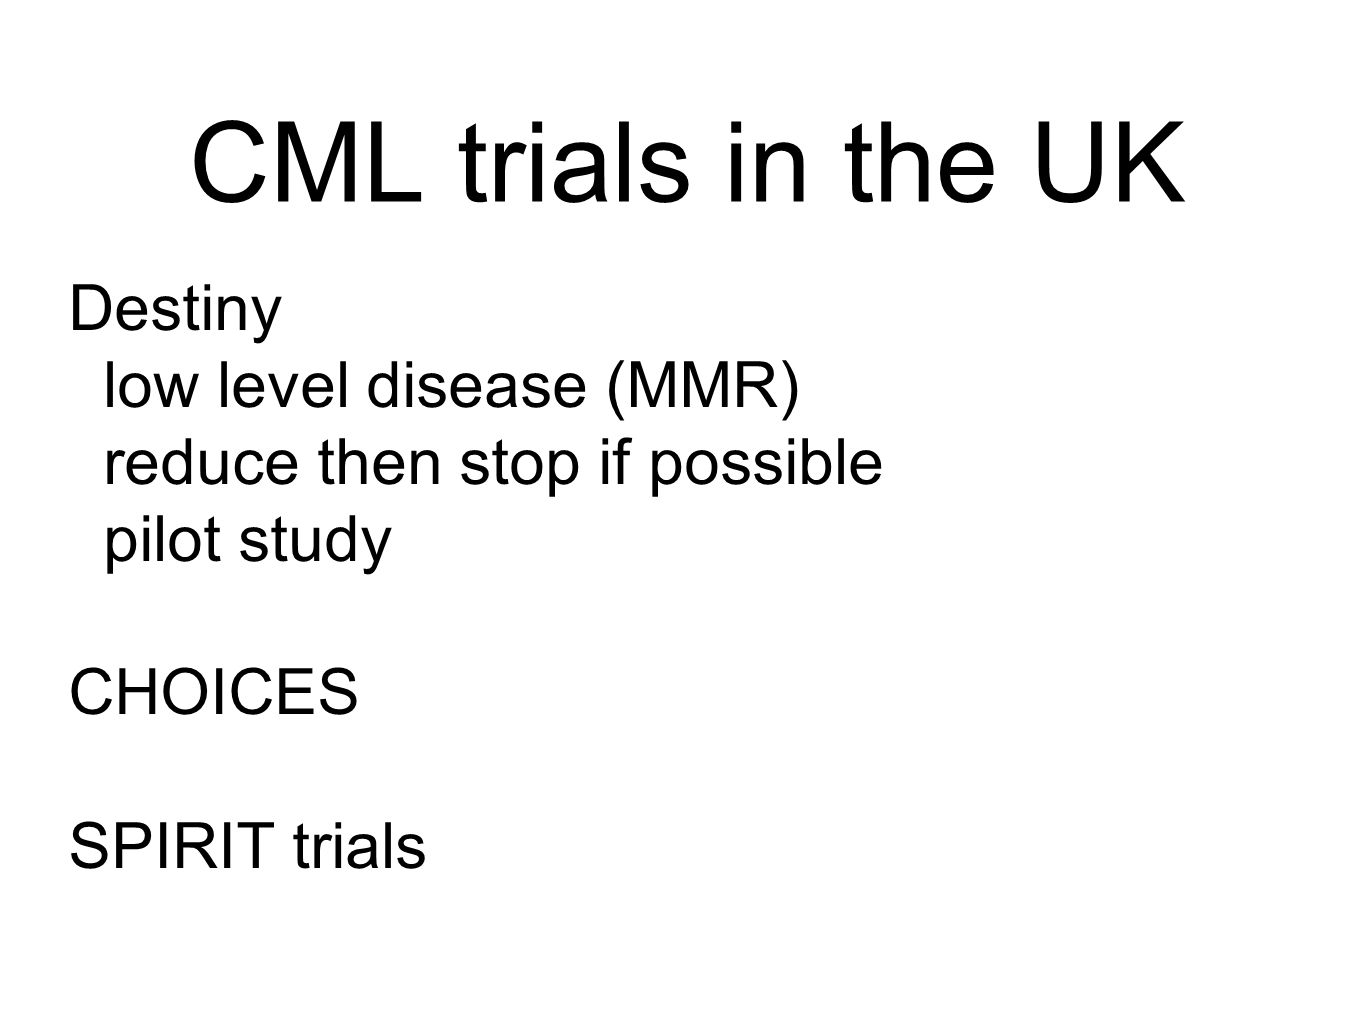 CML trials in the UK Destiny low level disease (MMR) reduce then stop if possible pilot study CHOICES SPIRIT trials